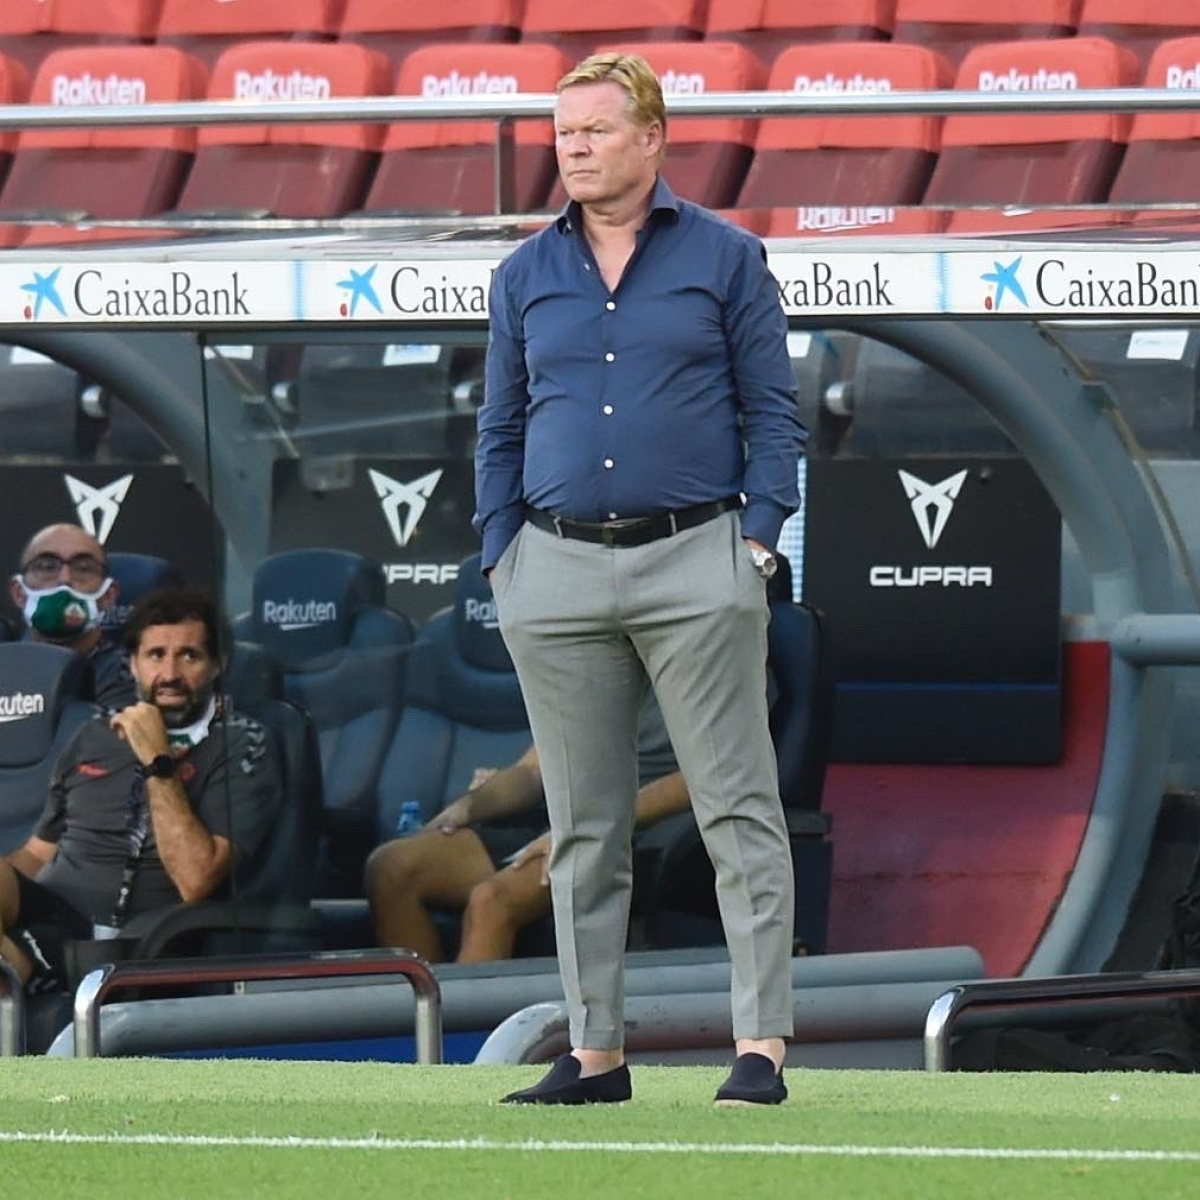 'Very difficult' for Barcelona to win La Liga, admits Ronald Koeman after 1-1 draw against Eibar